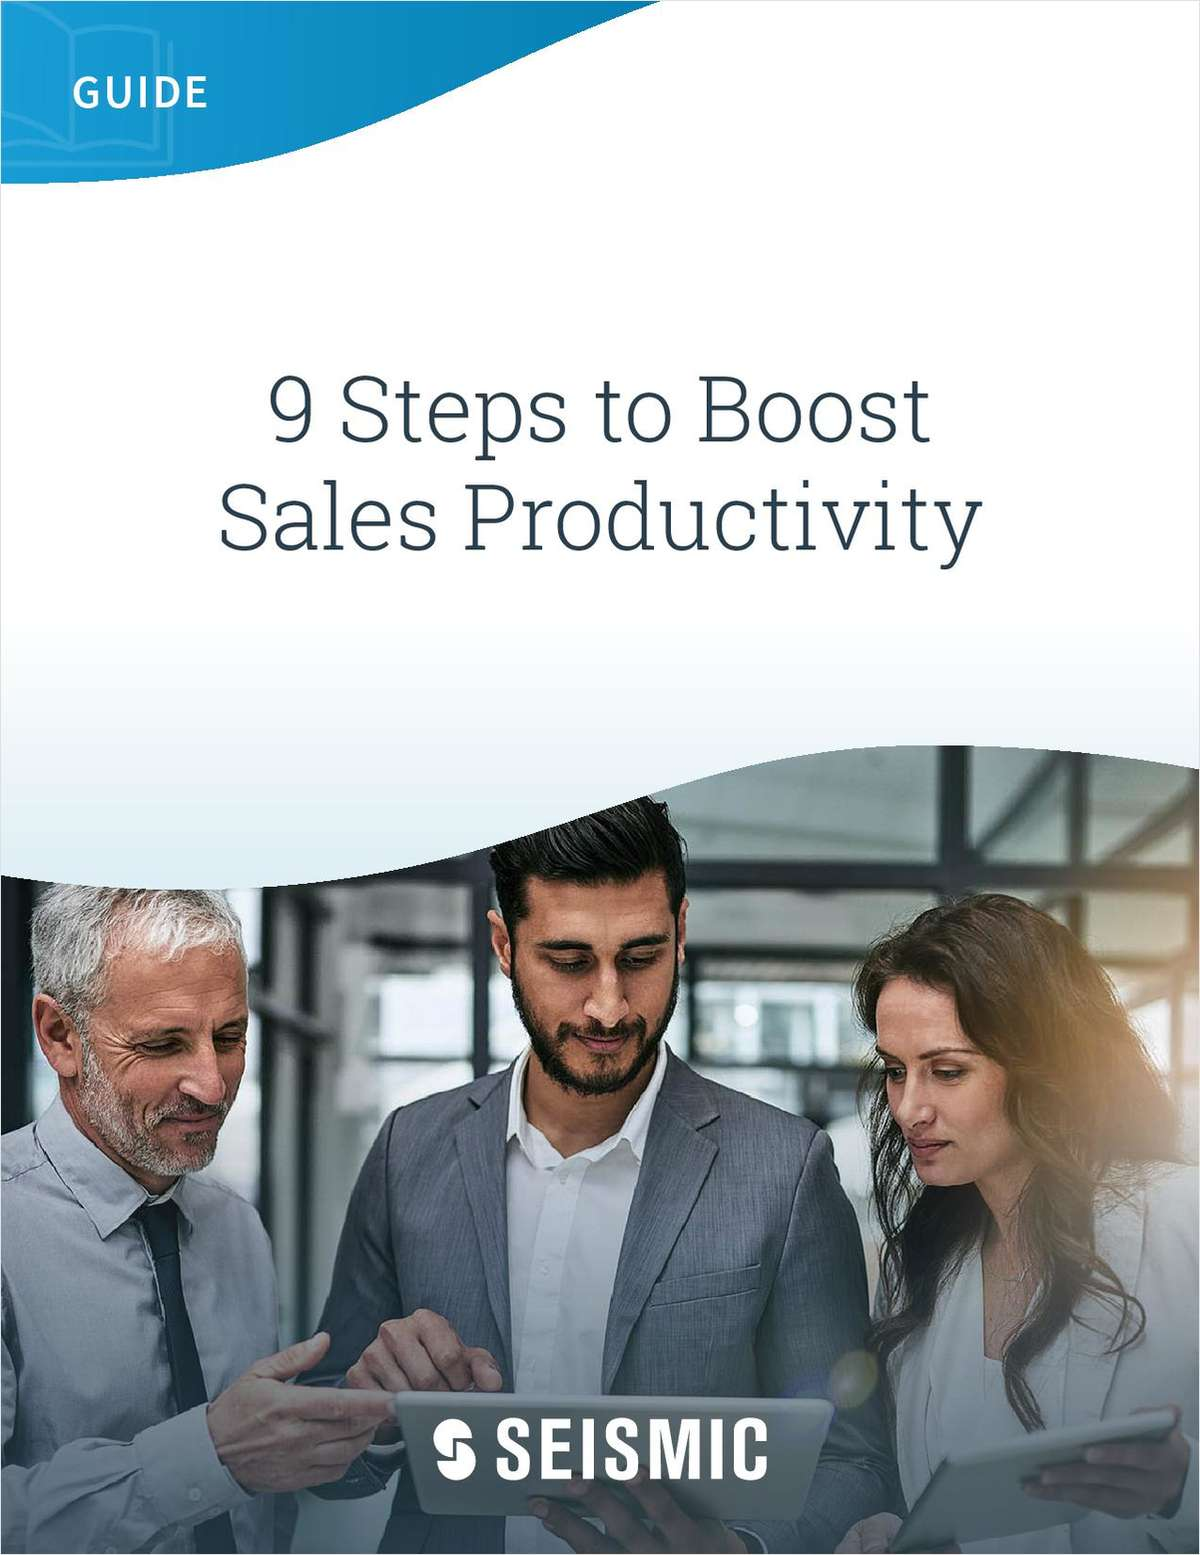 9 Steps to Boost Sales Productivity